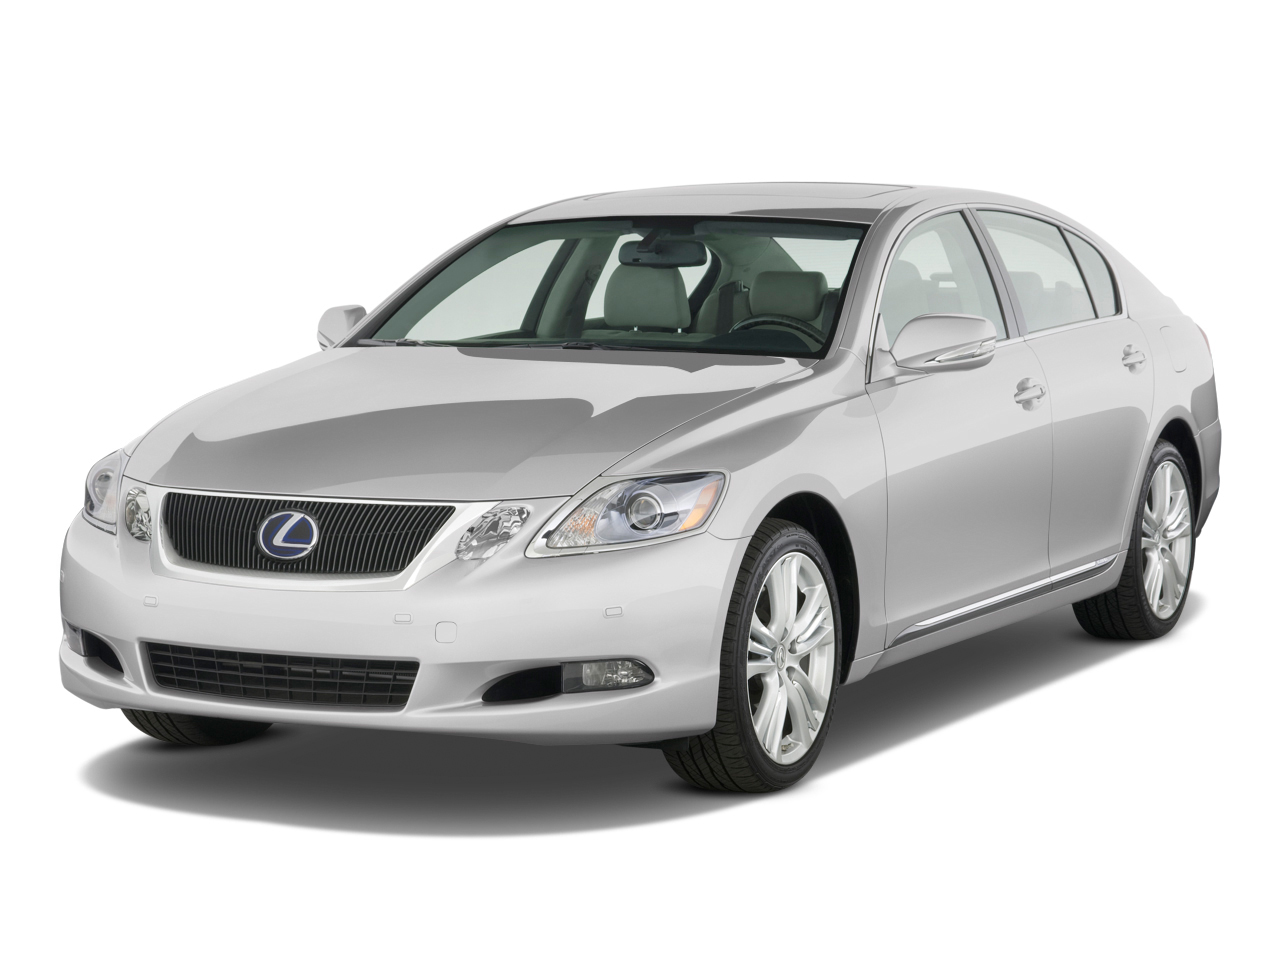 2011 lexus gs 450h review ratings specs prices and. Black Bedroom Furniture Sets. Home Design Ideas